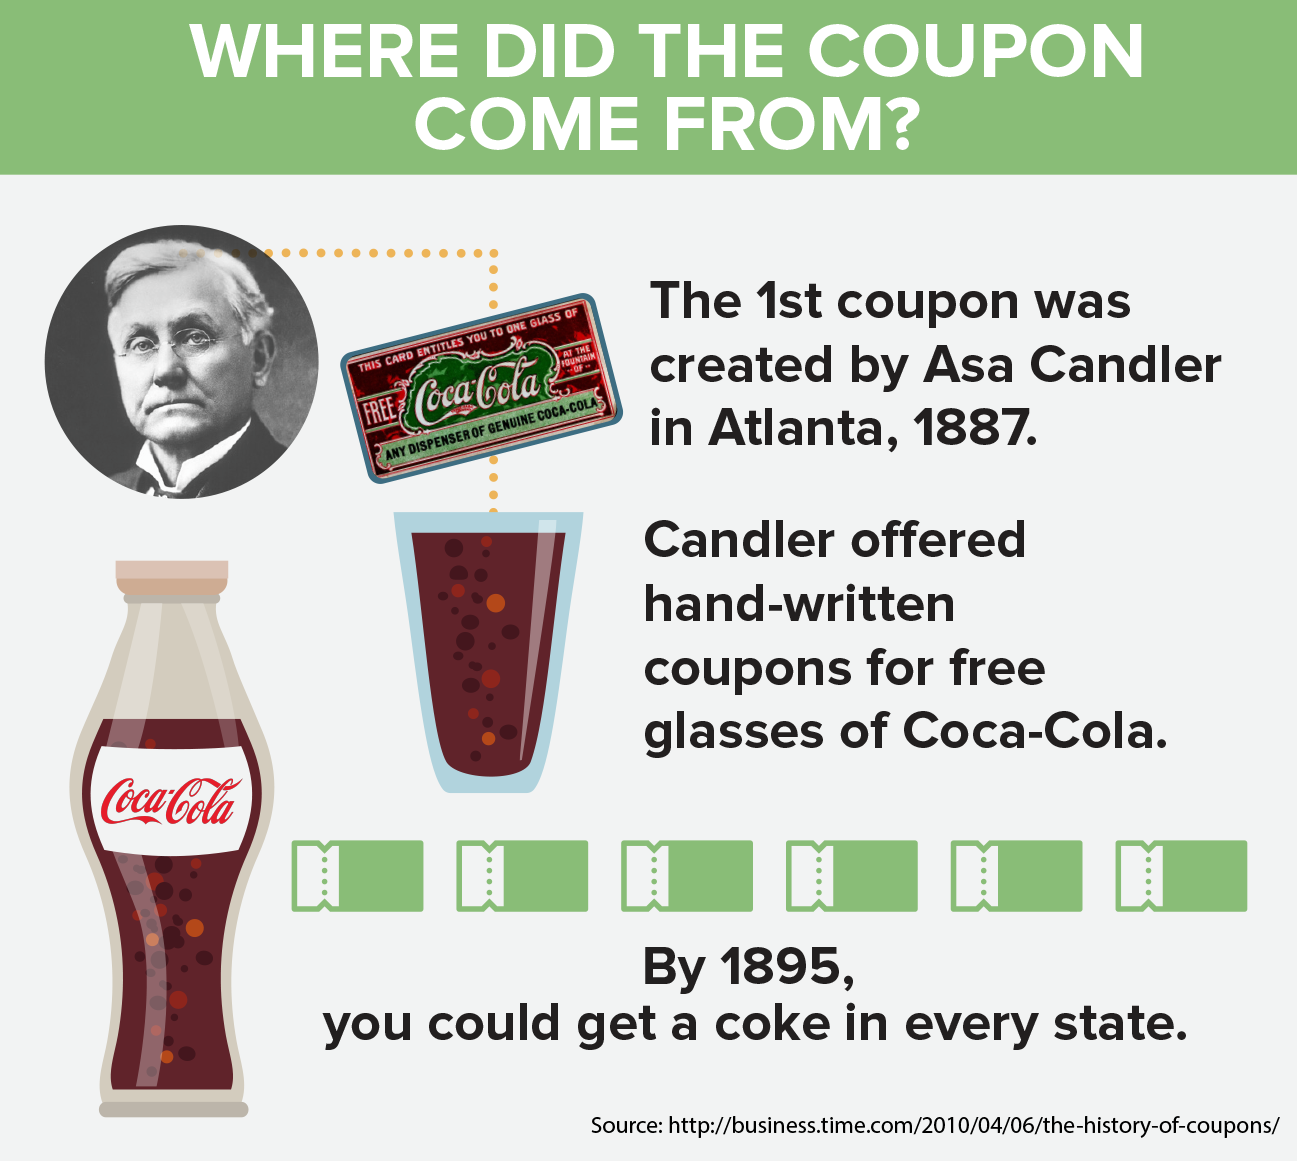 Where did the coupon come from?